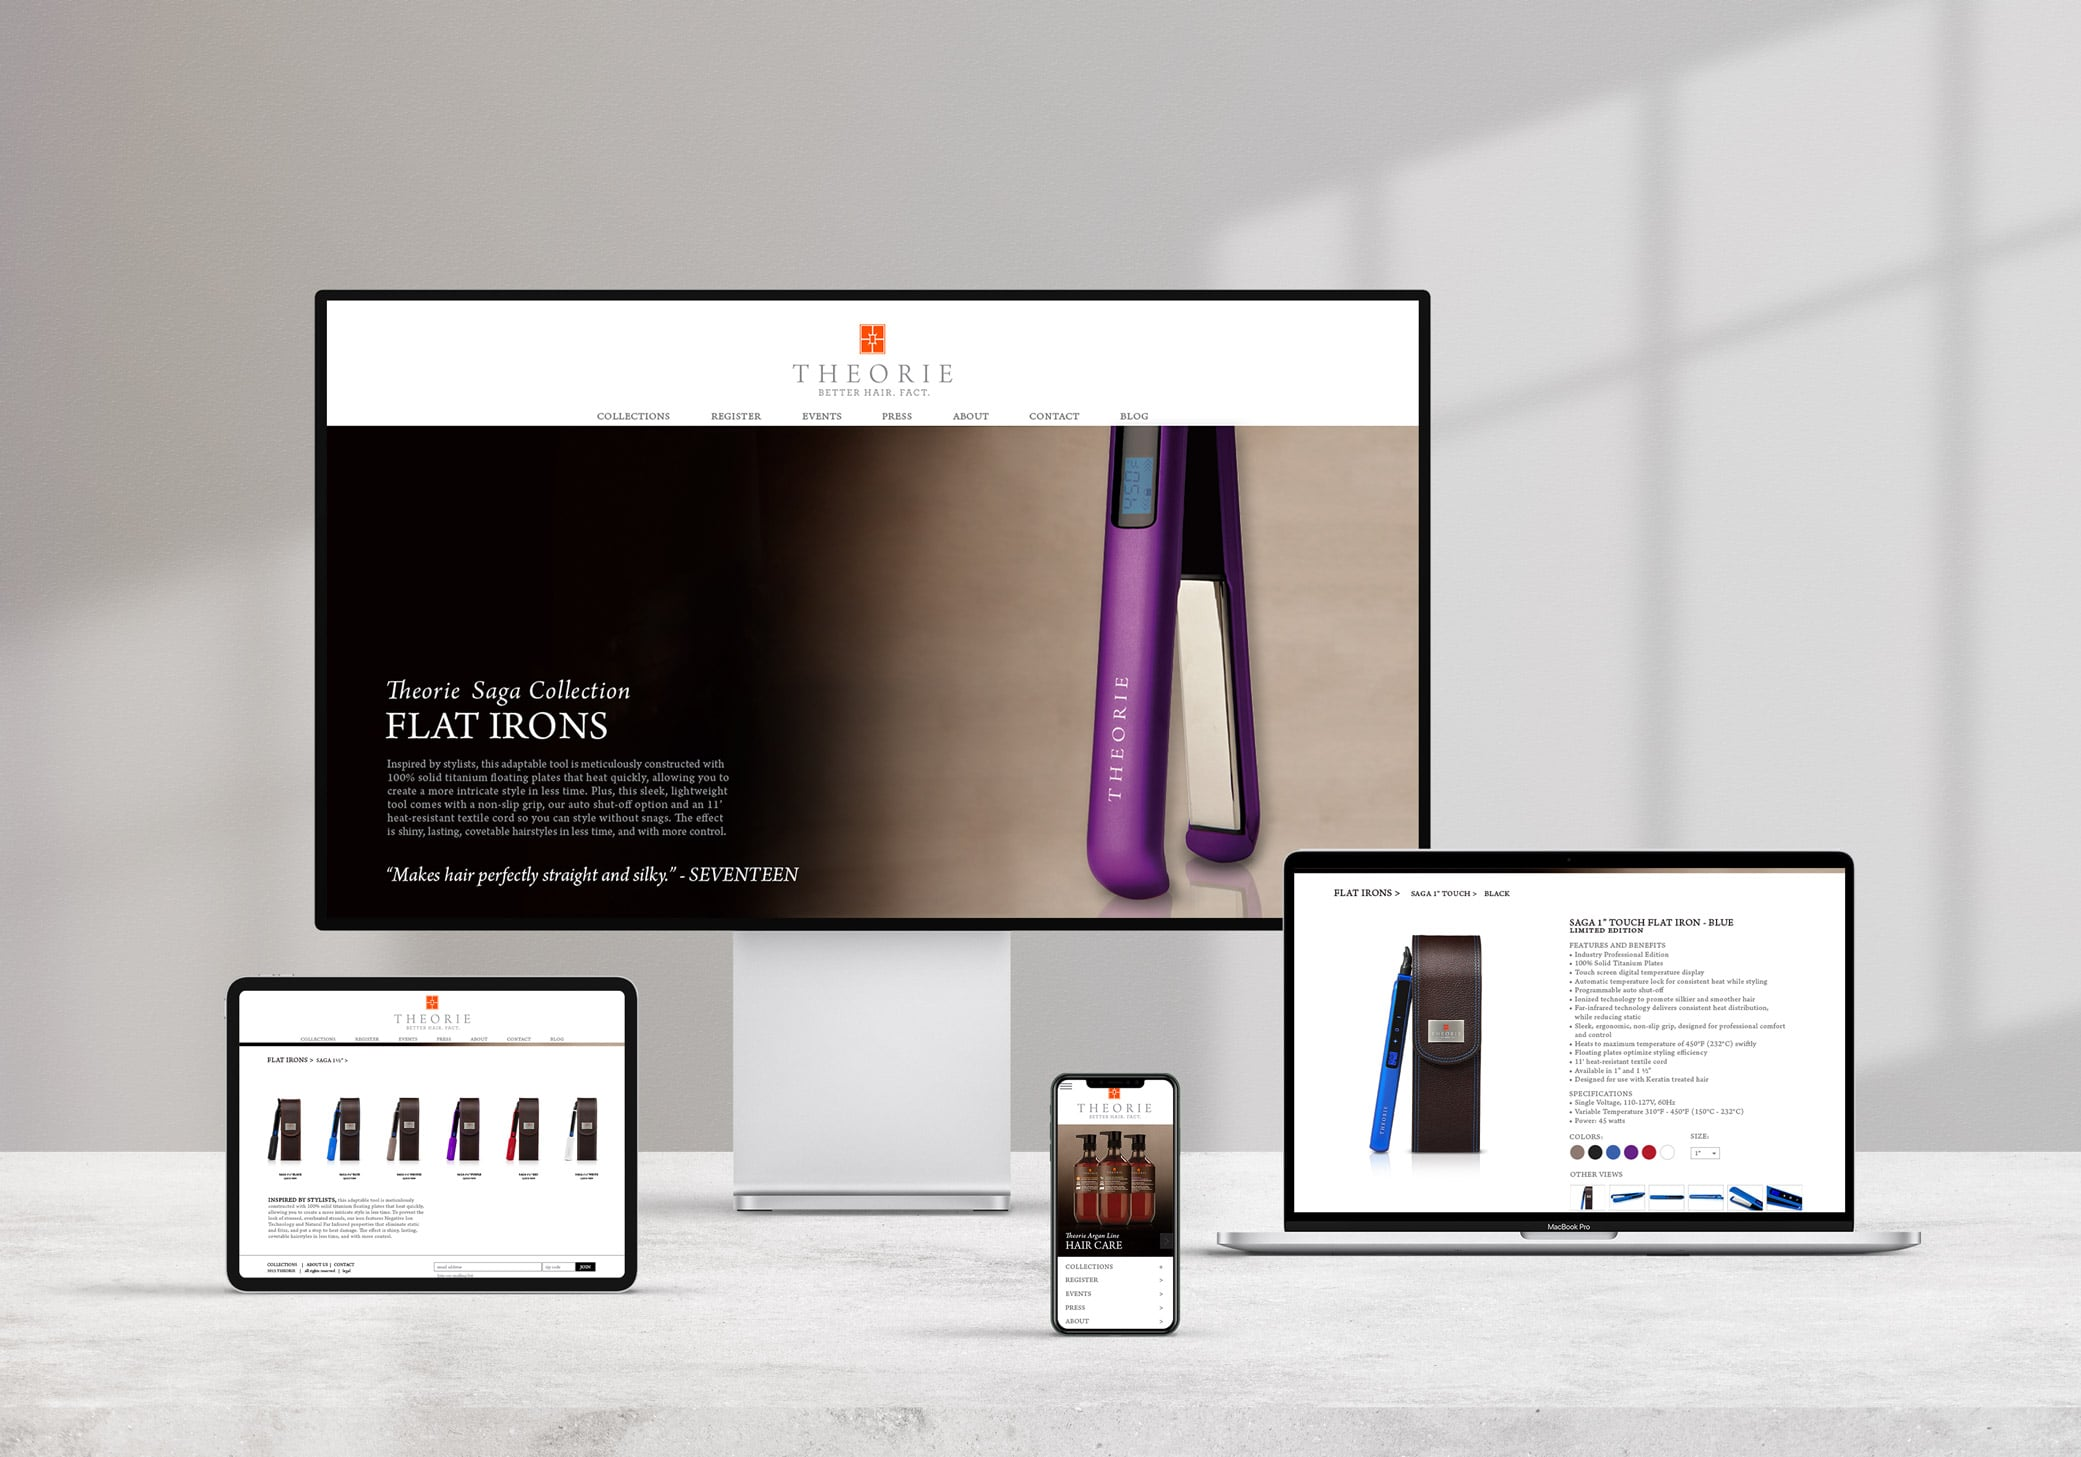 Theorie high-end website design with light backgrounds to make hair tools pop and enhanced e-commerce features.